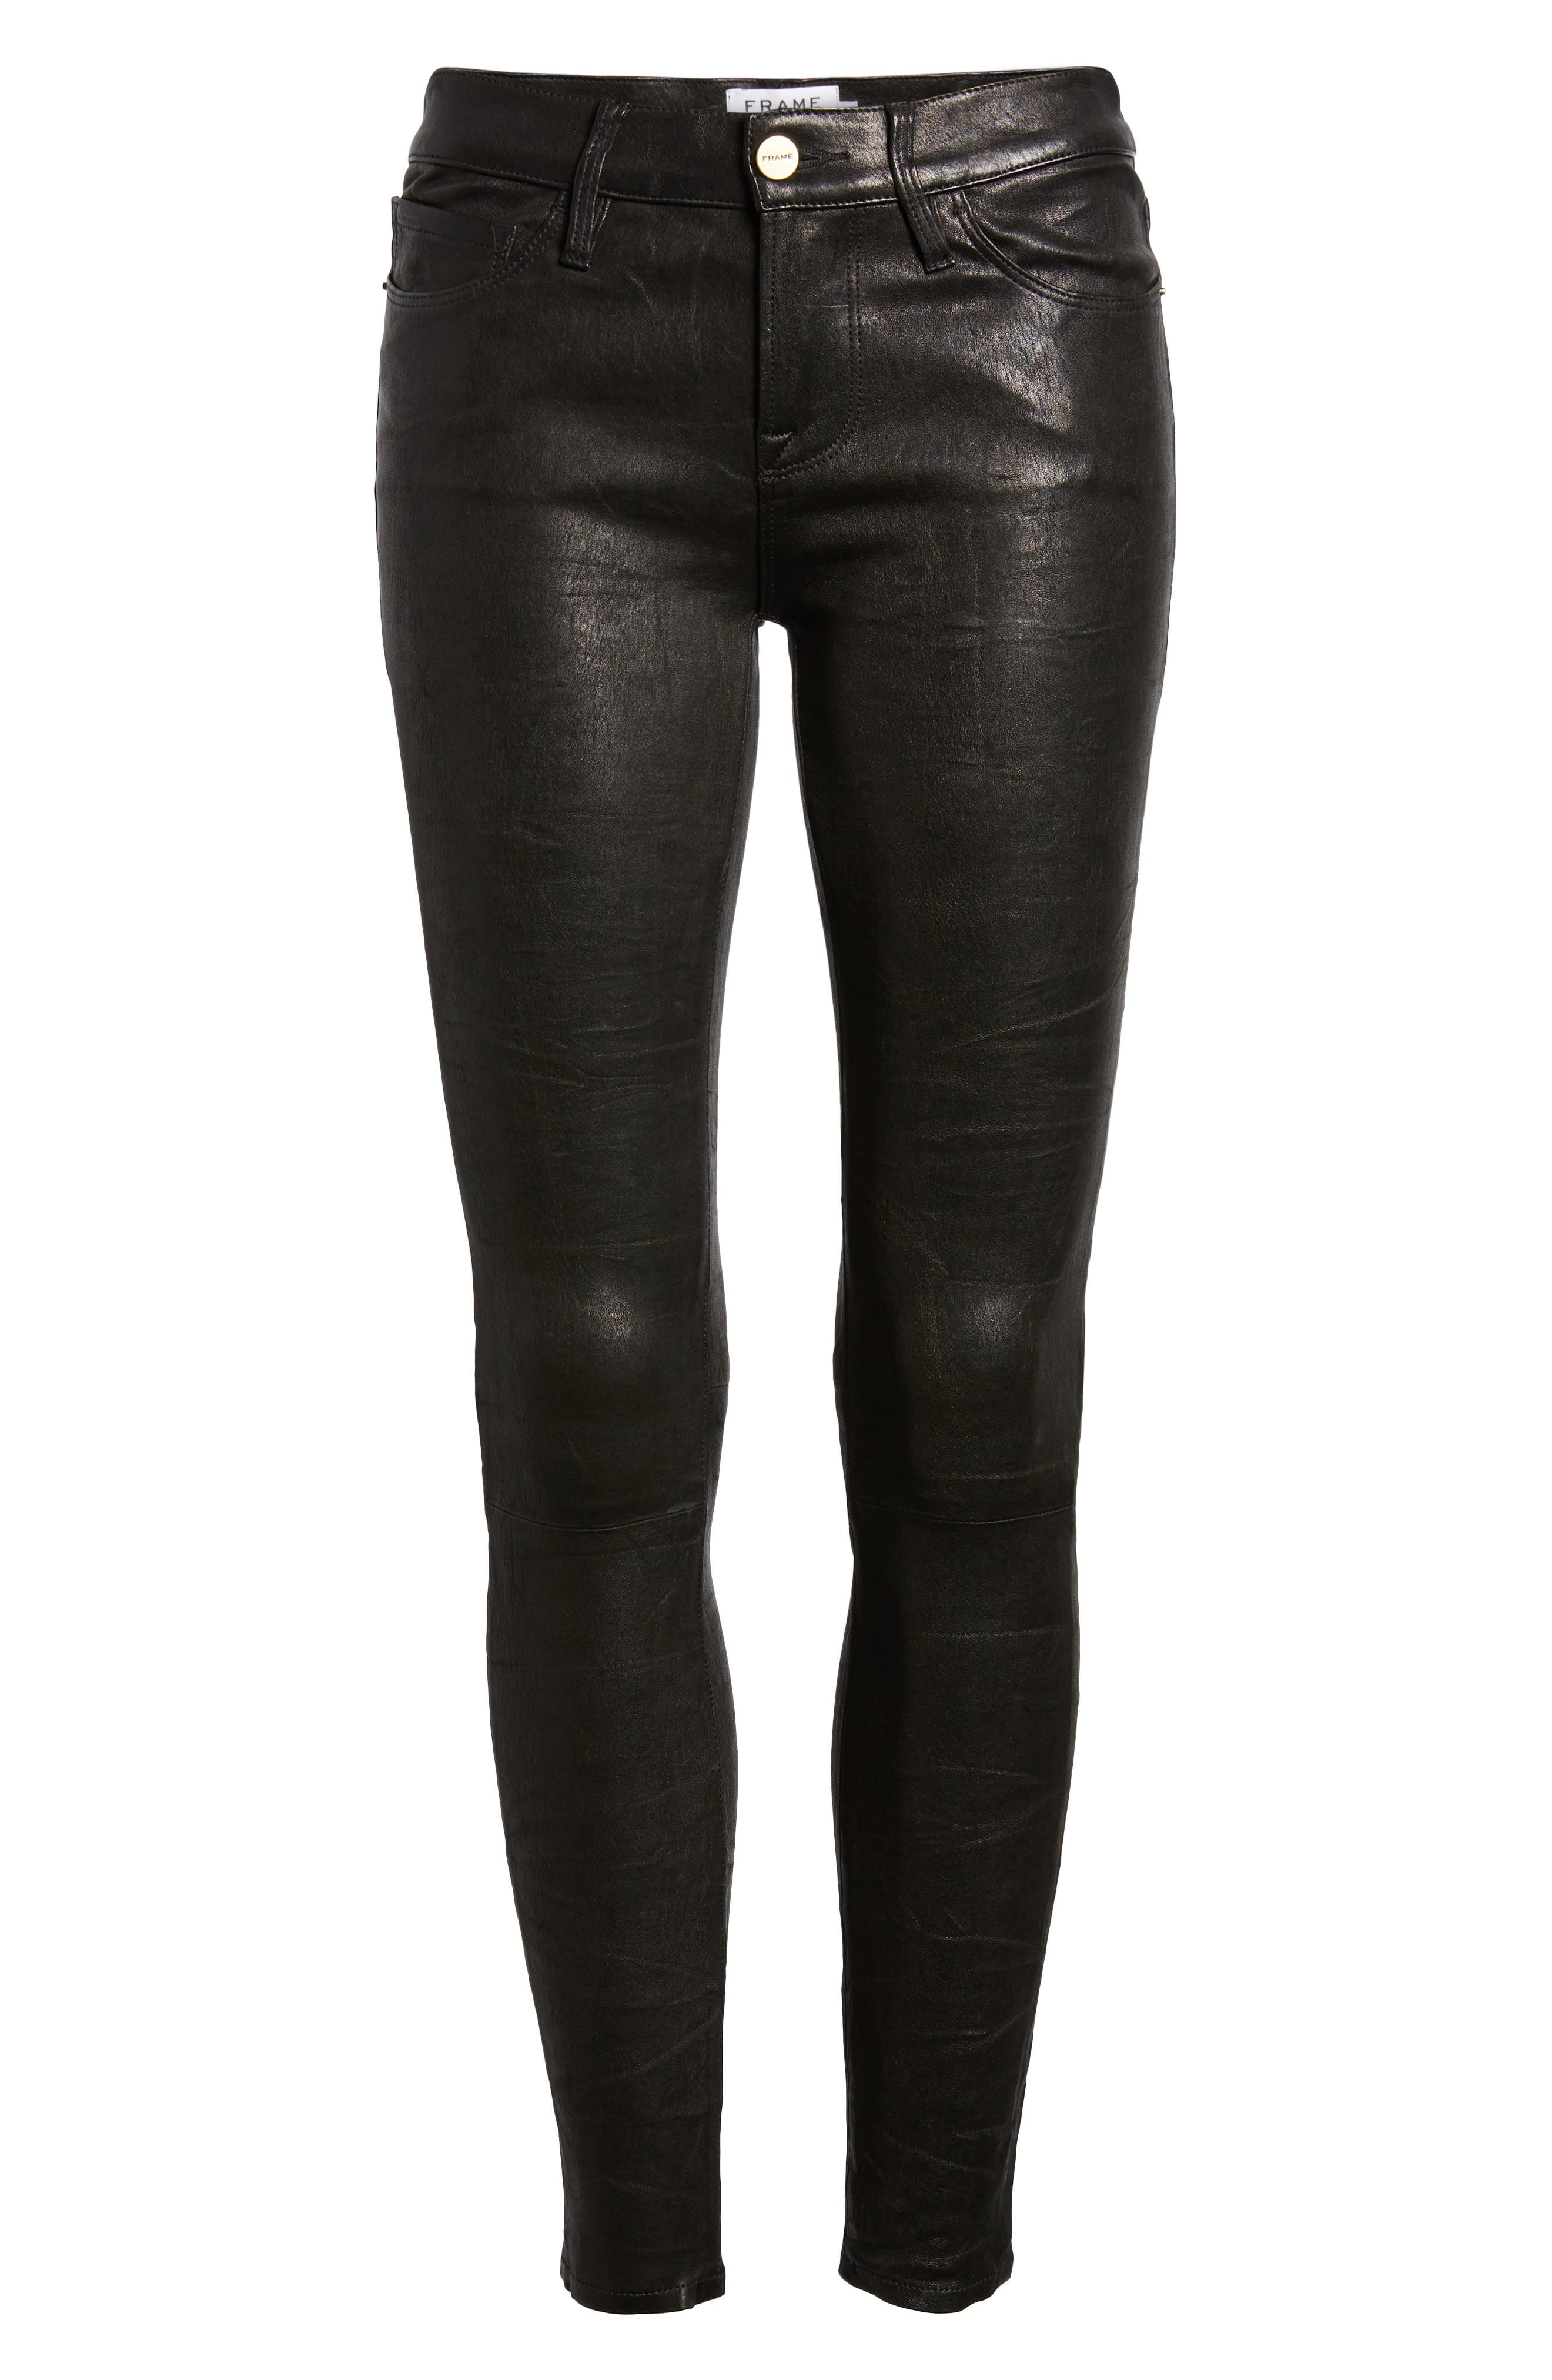 'Le Skinny' Lambskin Leather Pants,                             Main thumbnail 1, color,                             WASHED BLACK